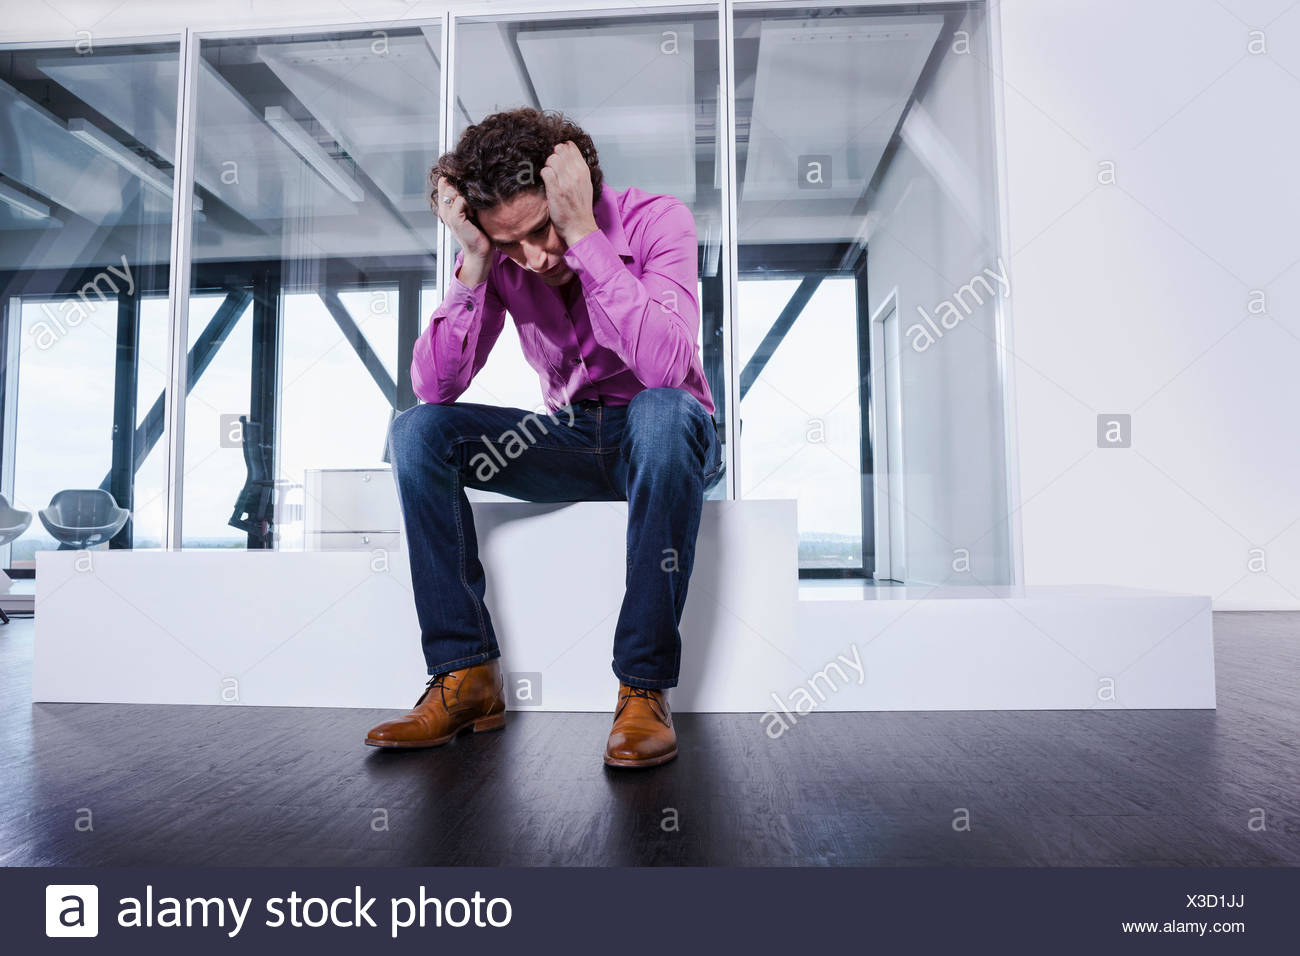 Mature man sitting on podium with head in hands - Stock Image